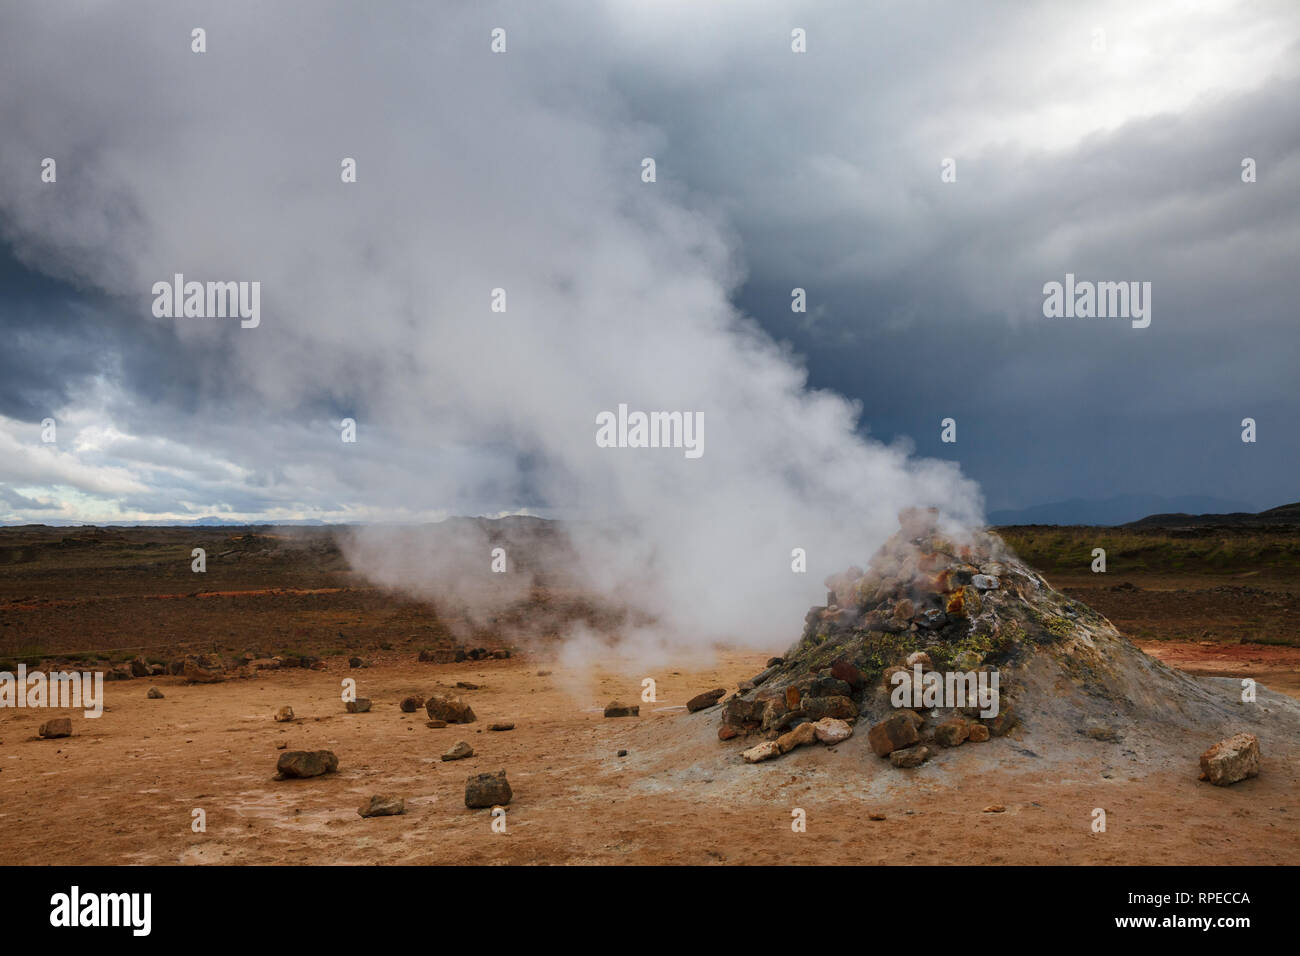 Hot steaming mud volcano or mud dome at Námafjall Hverir geothermal area in Mývatn region, Northeastern Iceland, Scandinavia - Stock Image